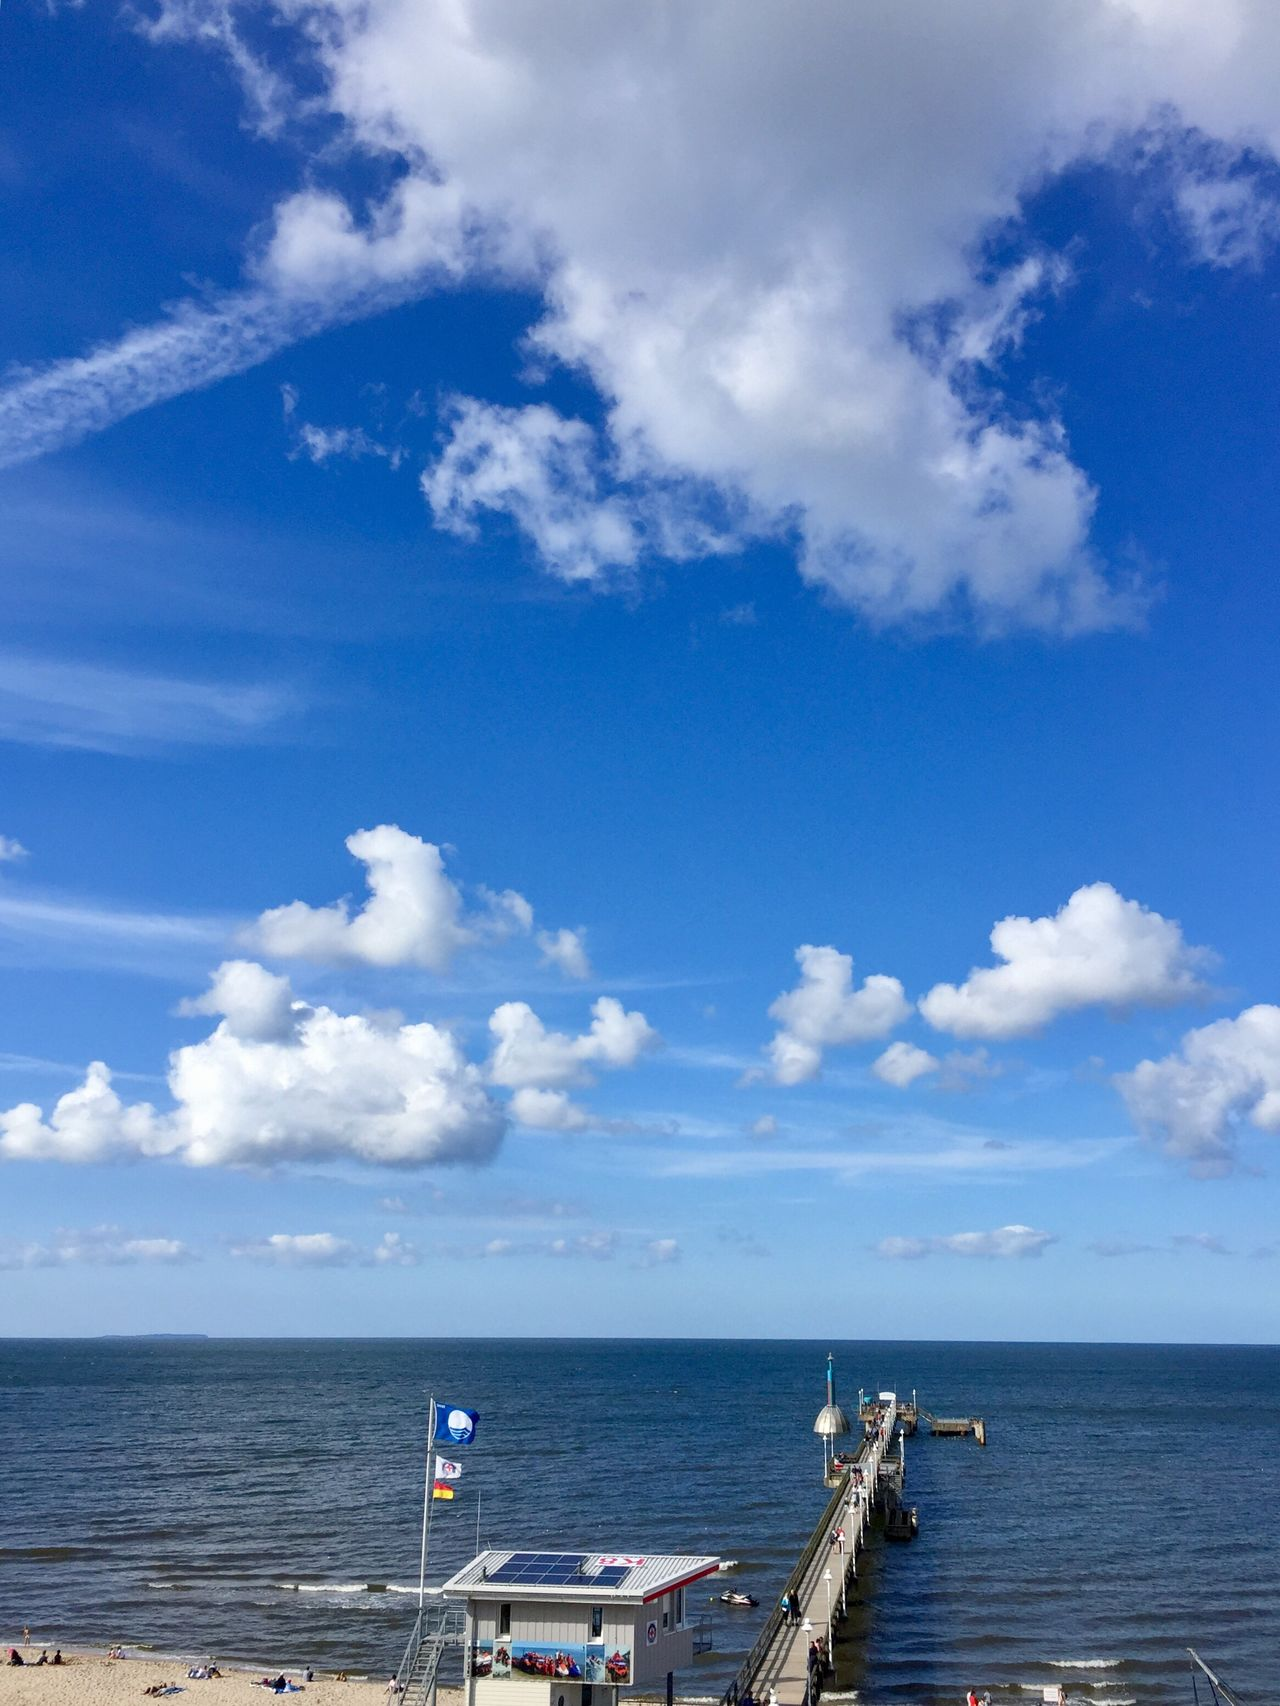 Sea Sky Cloud - Sky Water Scenics Horizon Over Water Nature Day Beach Balticsea Usedom Zinnowitz Usedom, Germany View Seabridge Tranquility Blue Outdoors Tranquil Scene Beauty In Nature No People Nautical Vessel Blue Sky